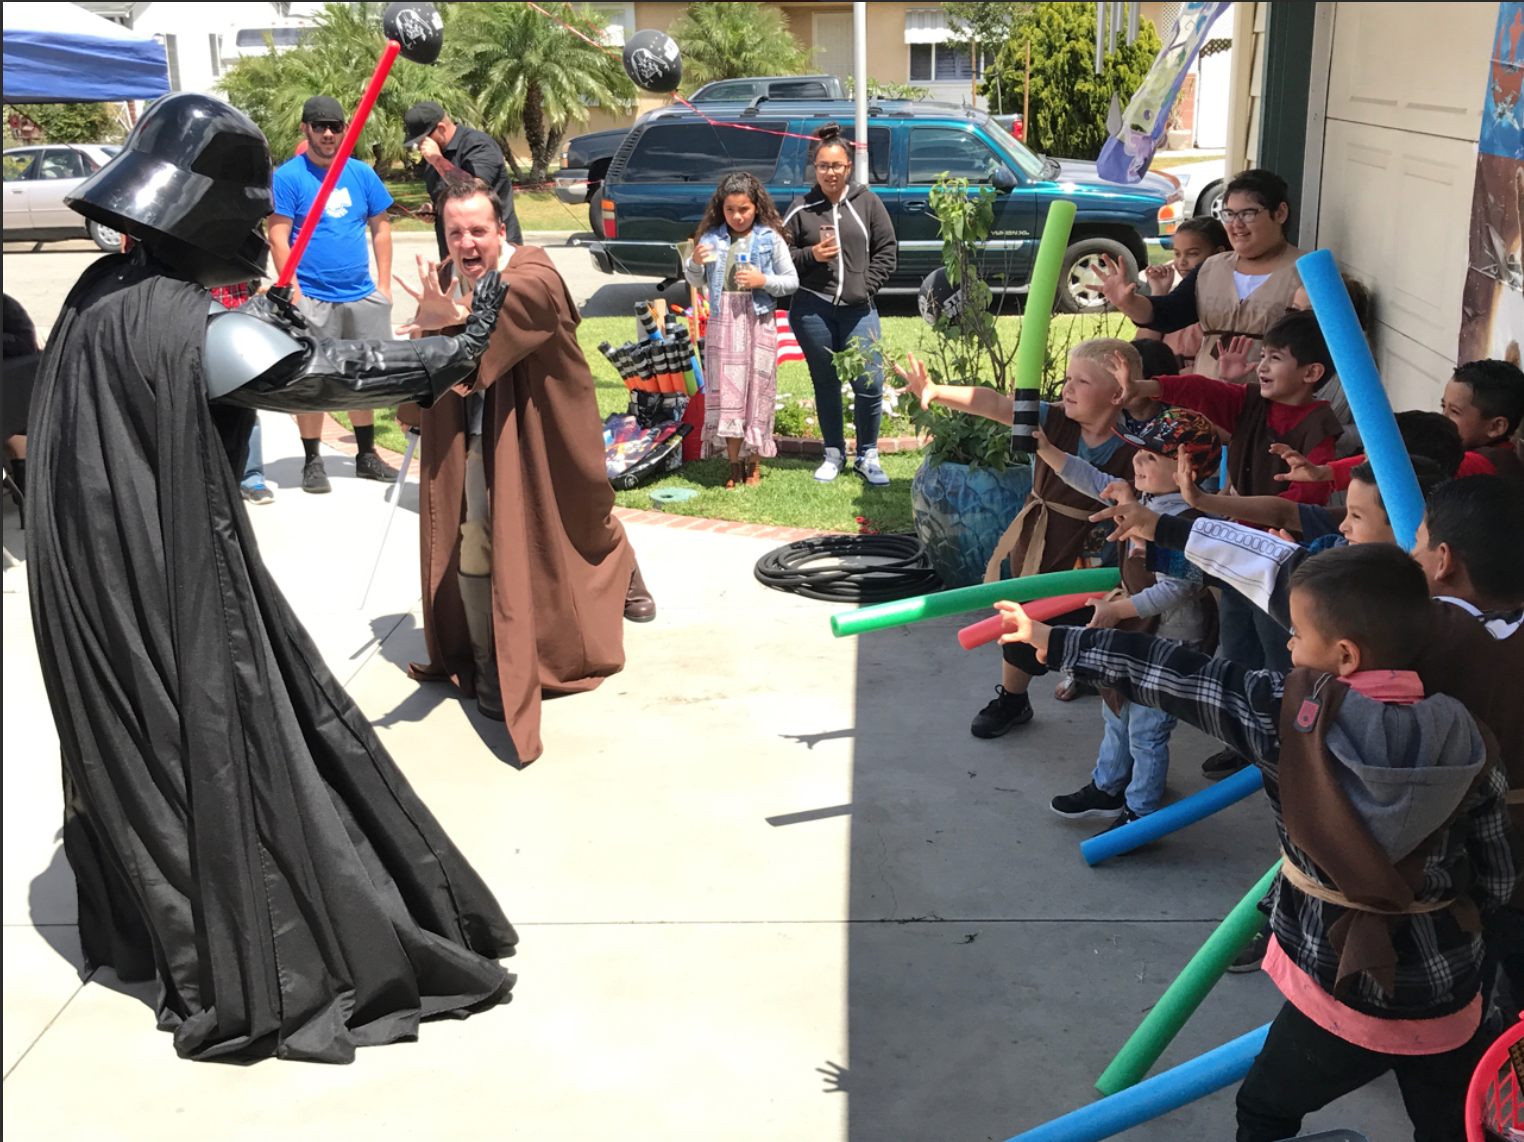 Darth Vader and Jedi Party Character